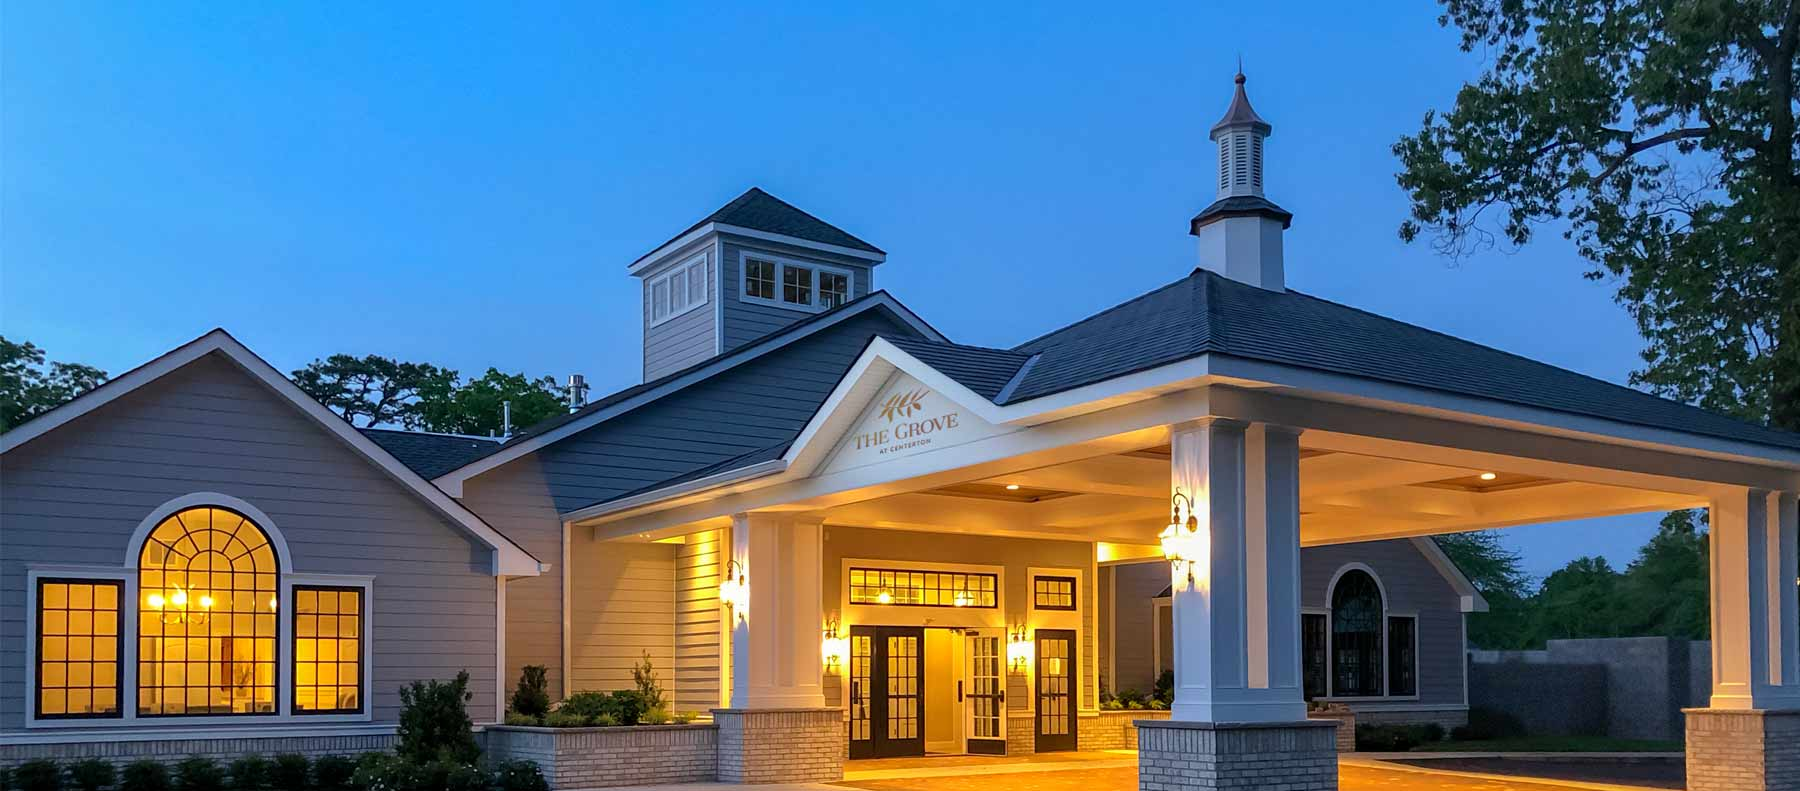 Places To Get Married In South Jersey